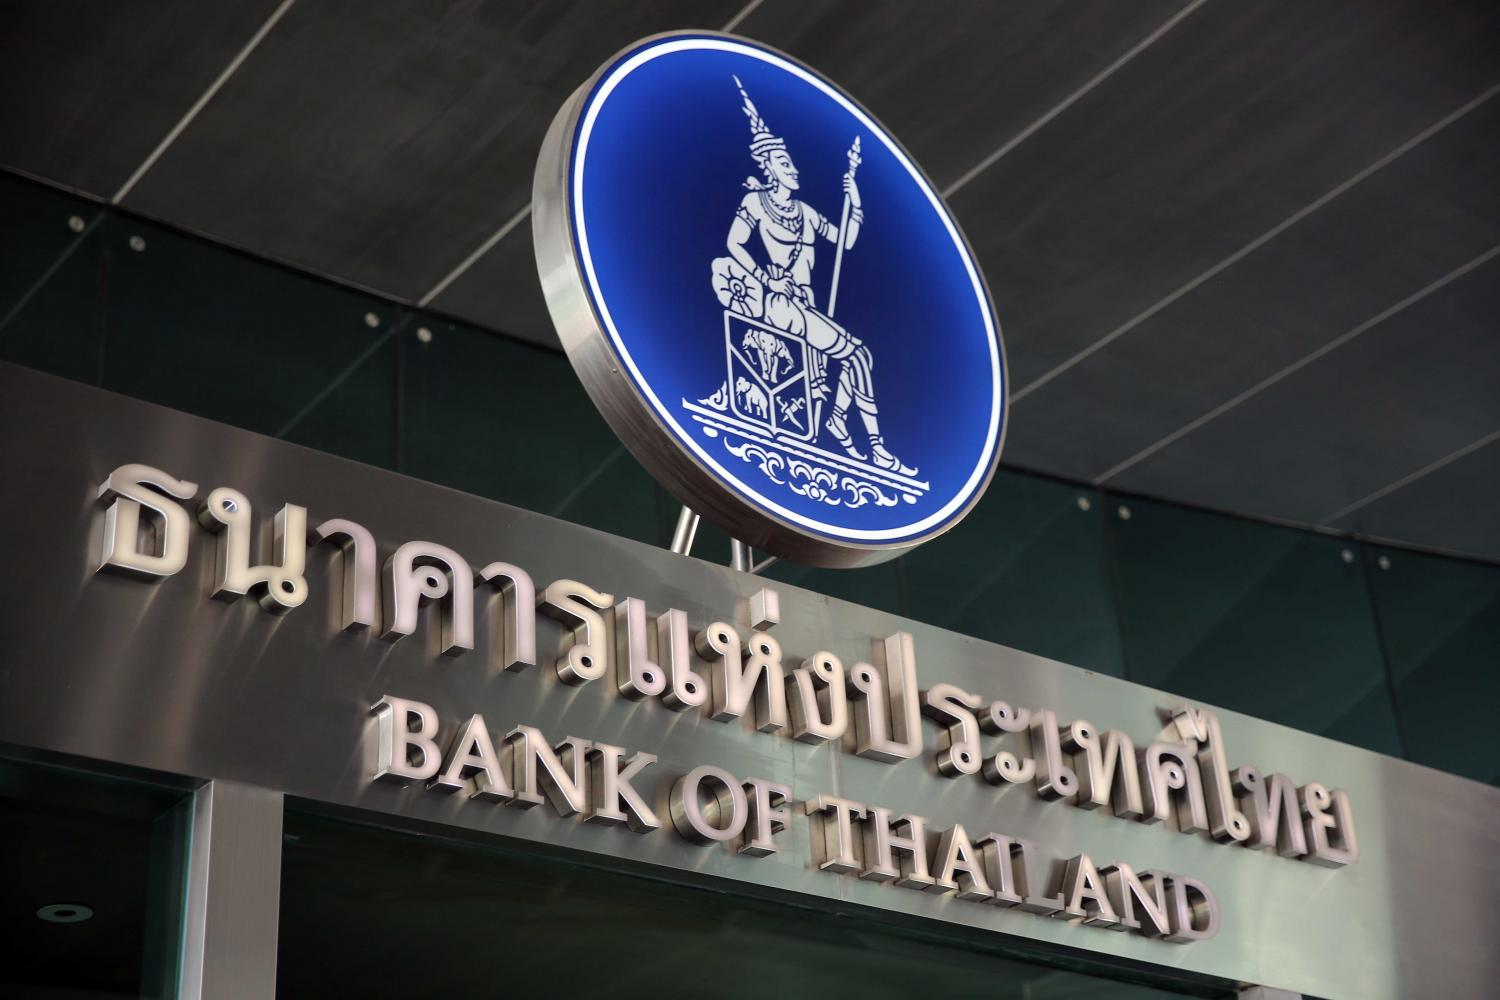 Central bank autonomy must be upheld